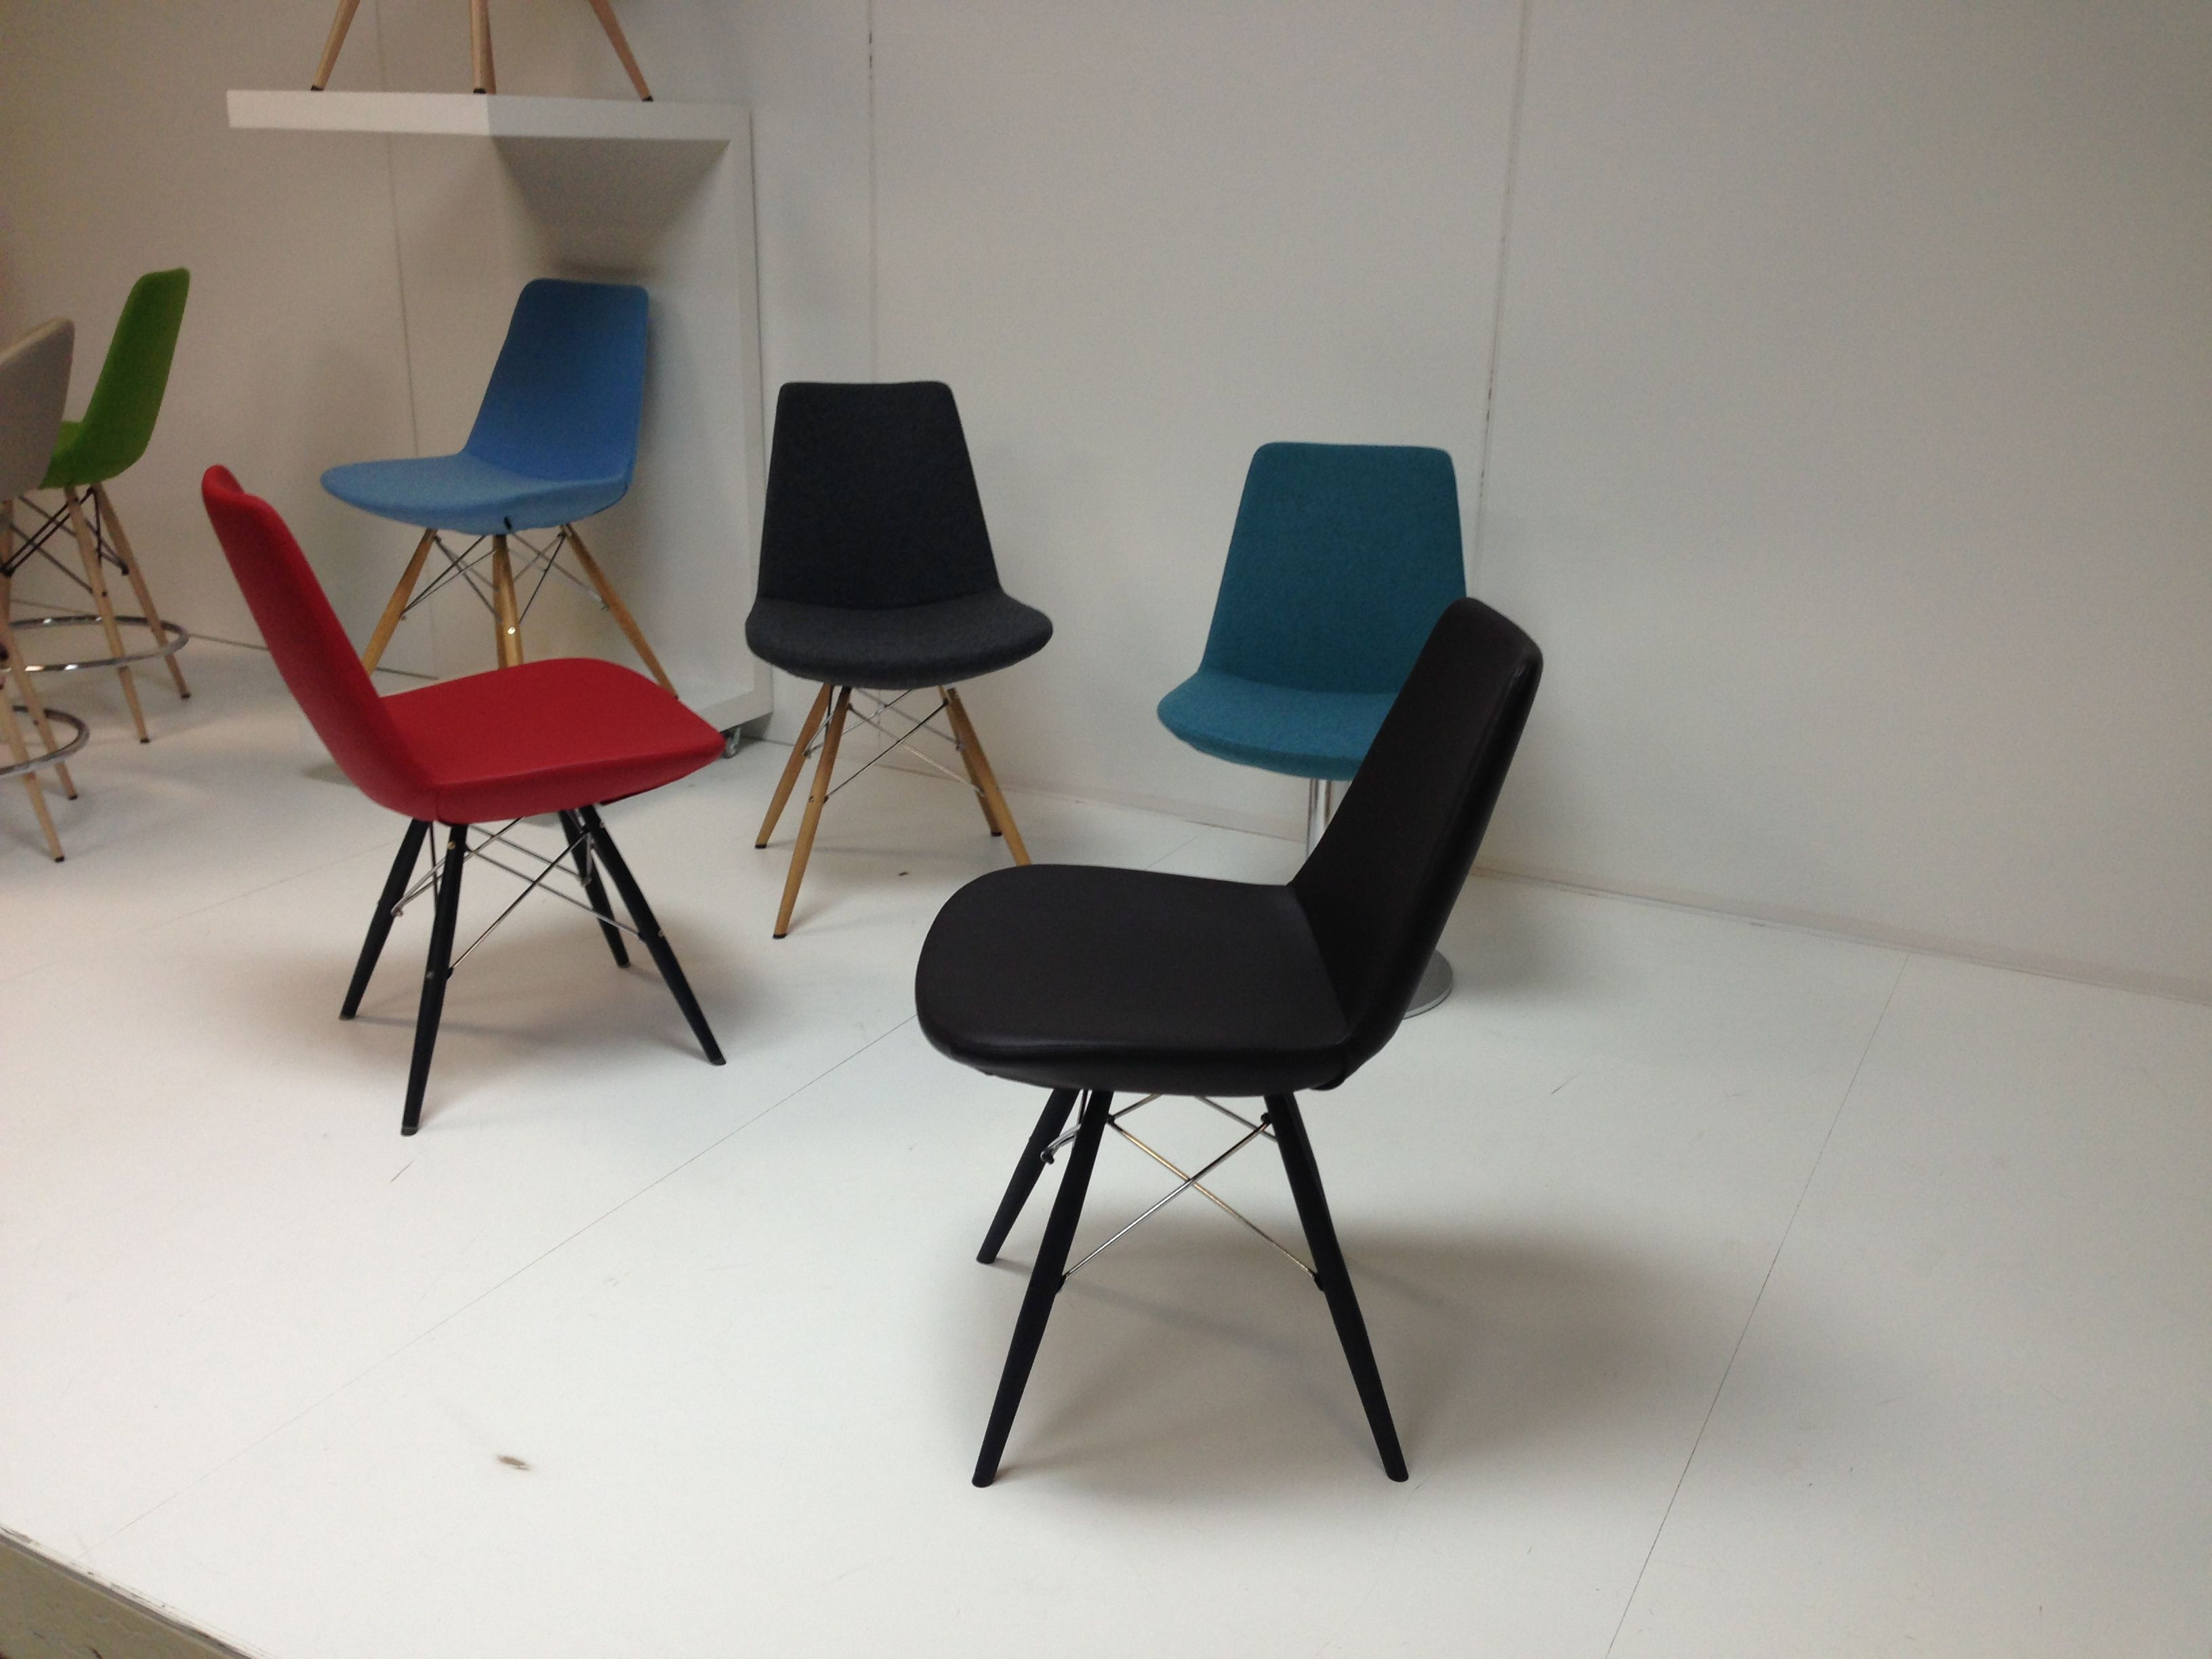 Modern Dining Room Chairs On Display In Multiple Frames And Seat Colors Available At